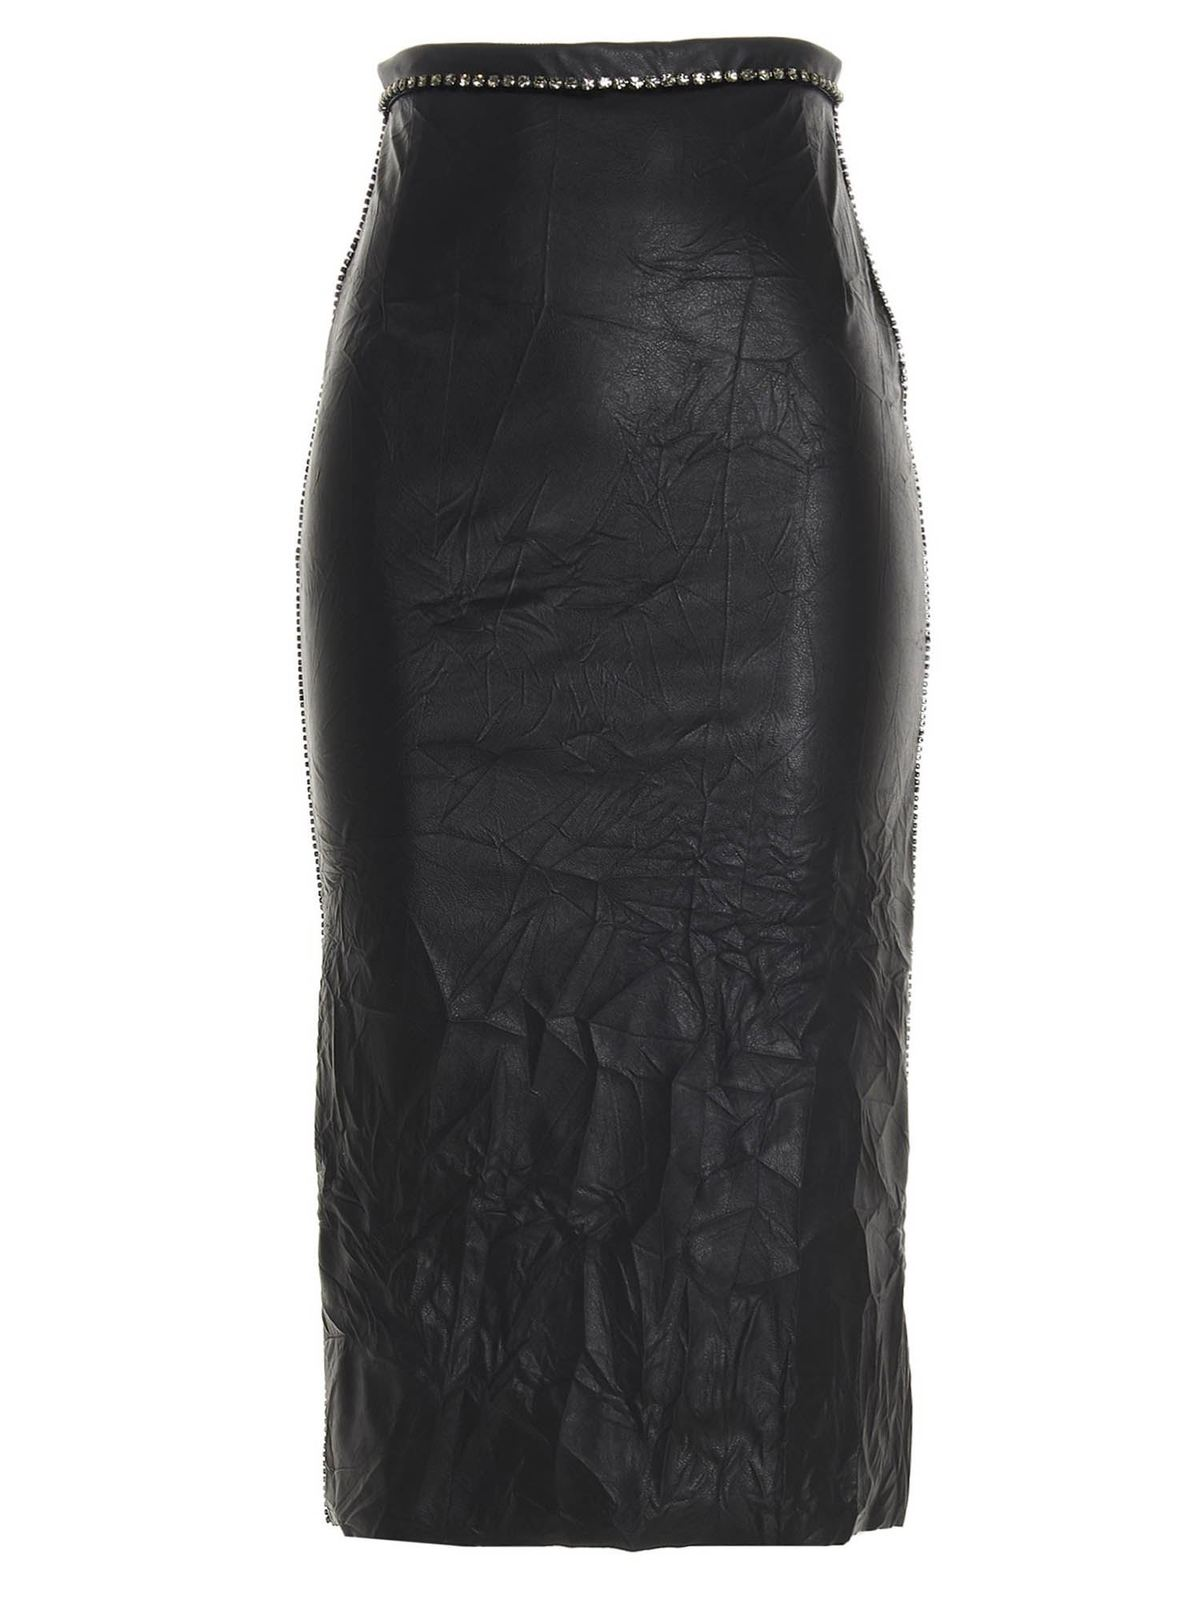 N°21 RHINESTONES CRACKLE PENCIL SKIRT IN BLACK